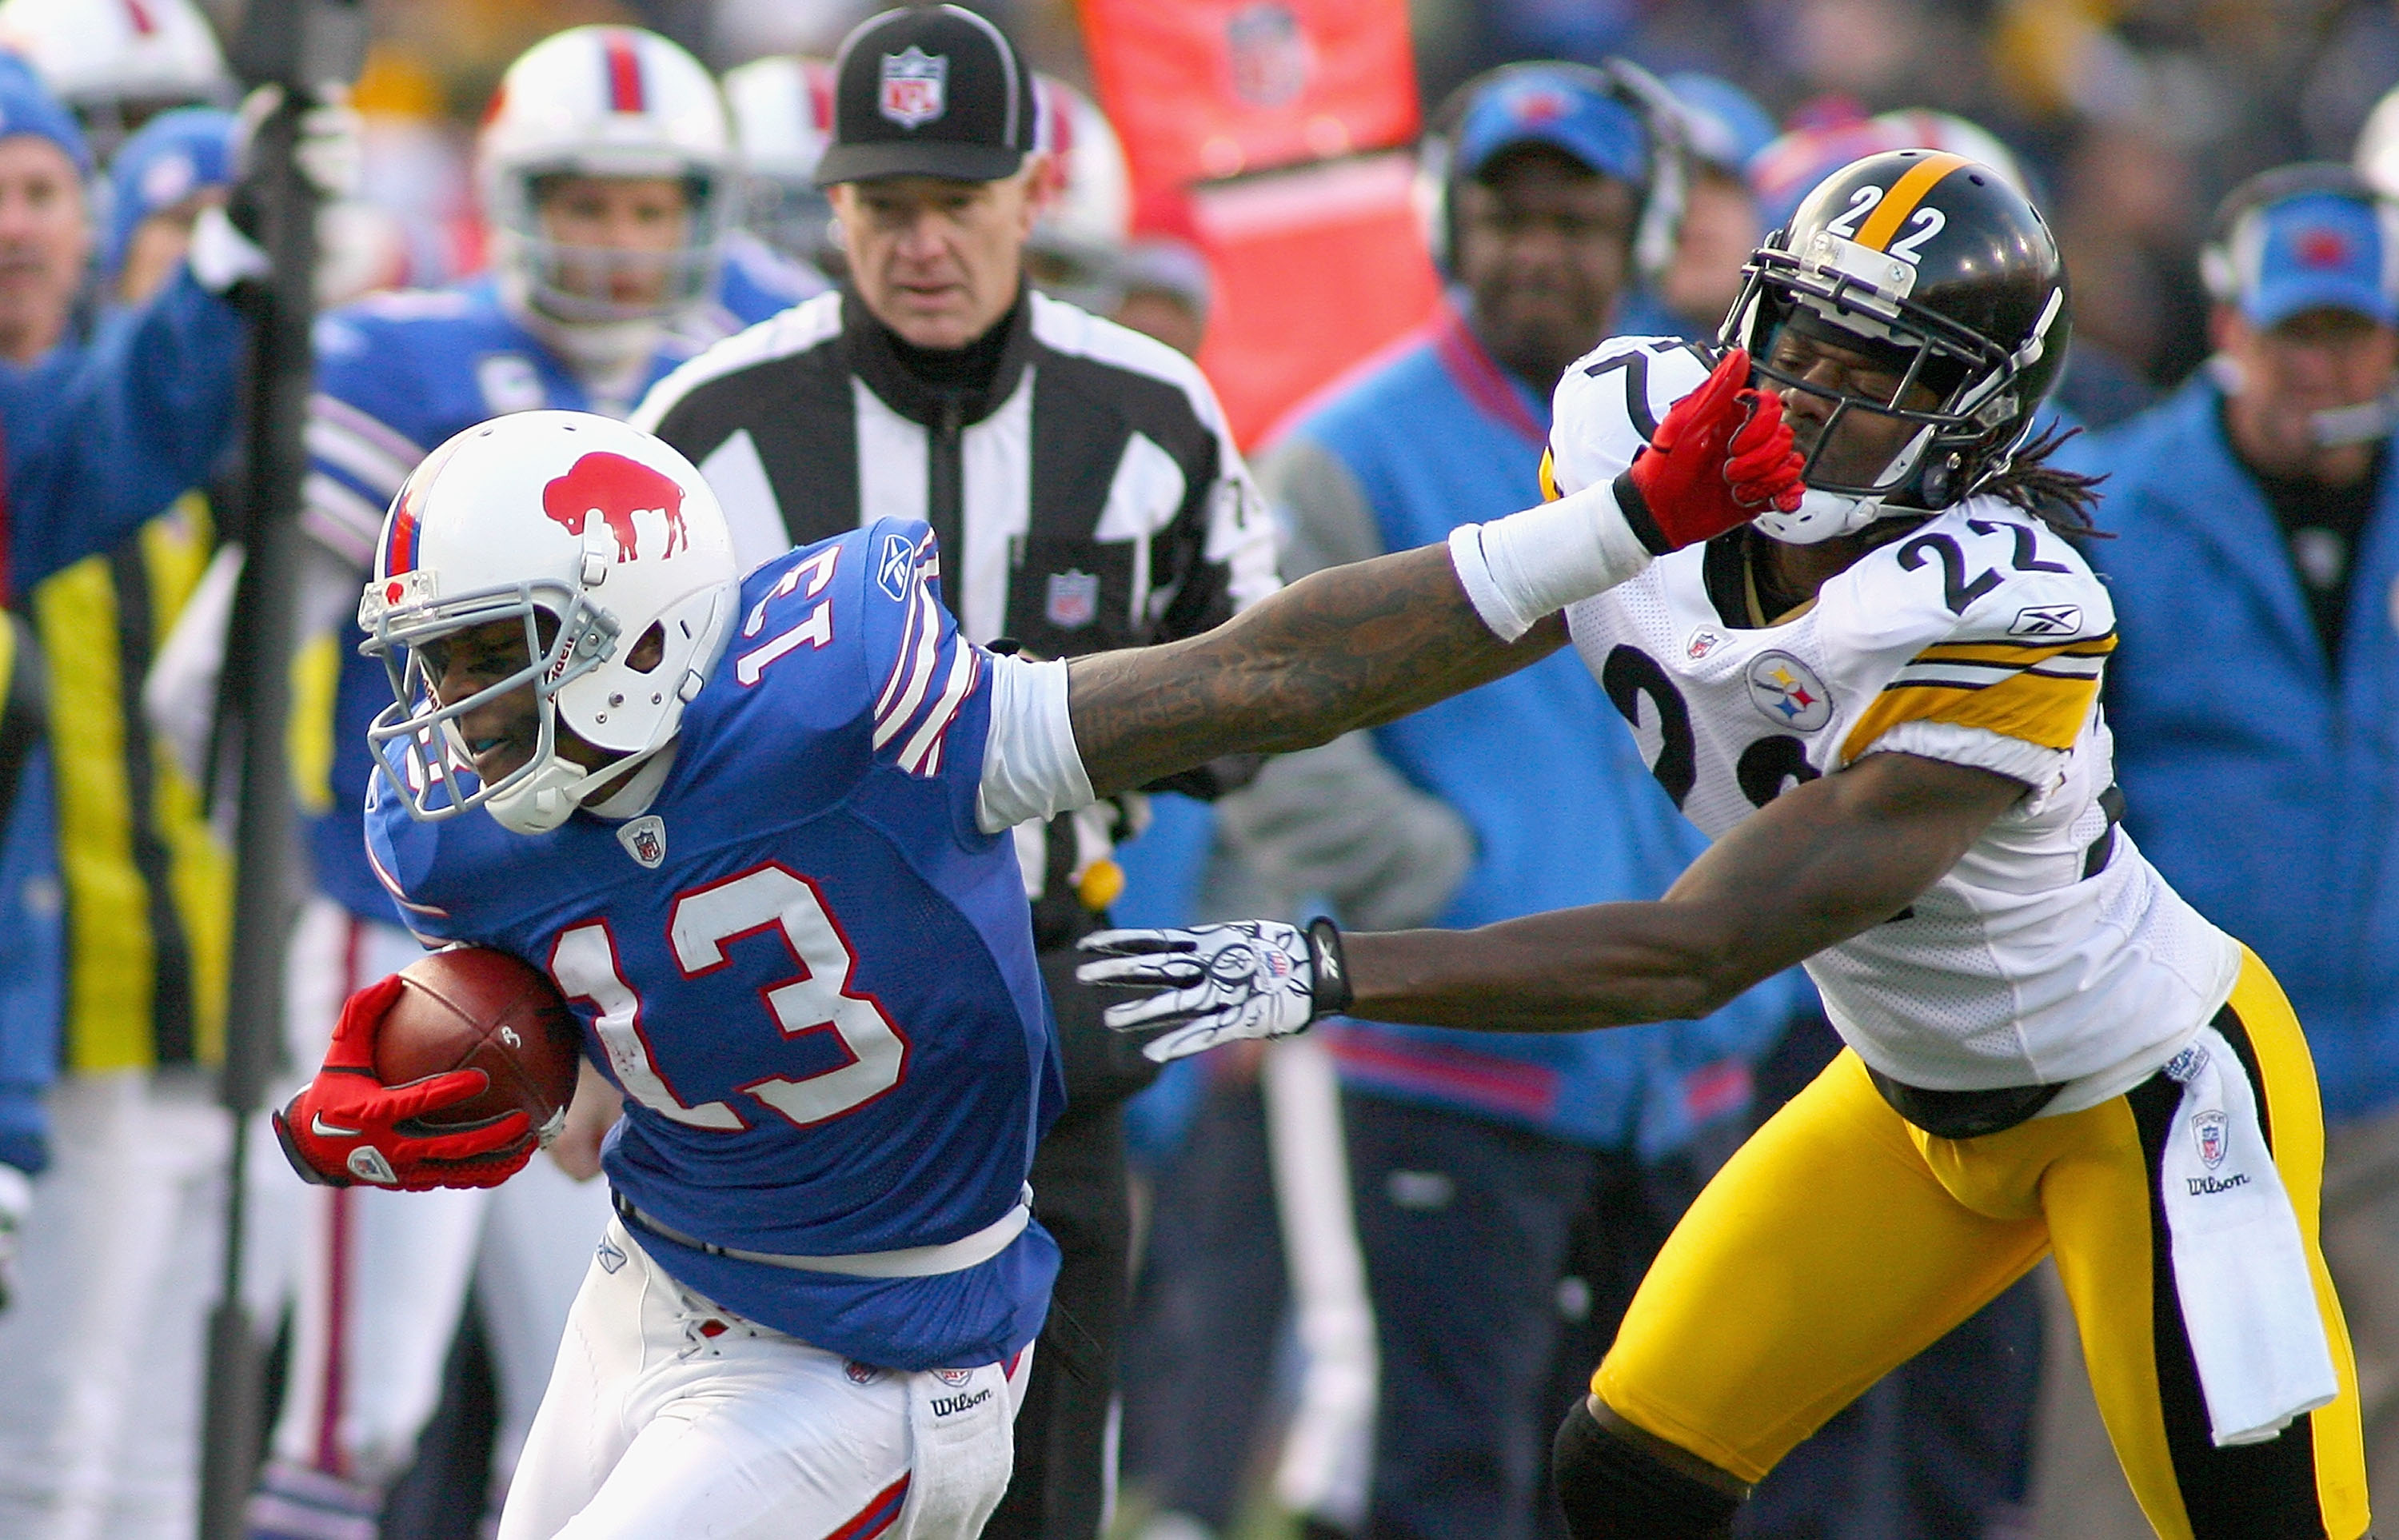 ORCHARD PARK, NY - NOVEMBER 28:  Steve Johnson #13 of the Buffalo Bills is pushed out of bounds by William Gay #22 of the Pittsburgh Steelers at Ralph Wilson Stadium at Ralph Wilson Stadium on November 28, 2010 in Orchard Park, New York. Pittsburgh won 19